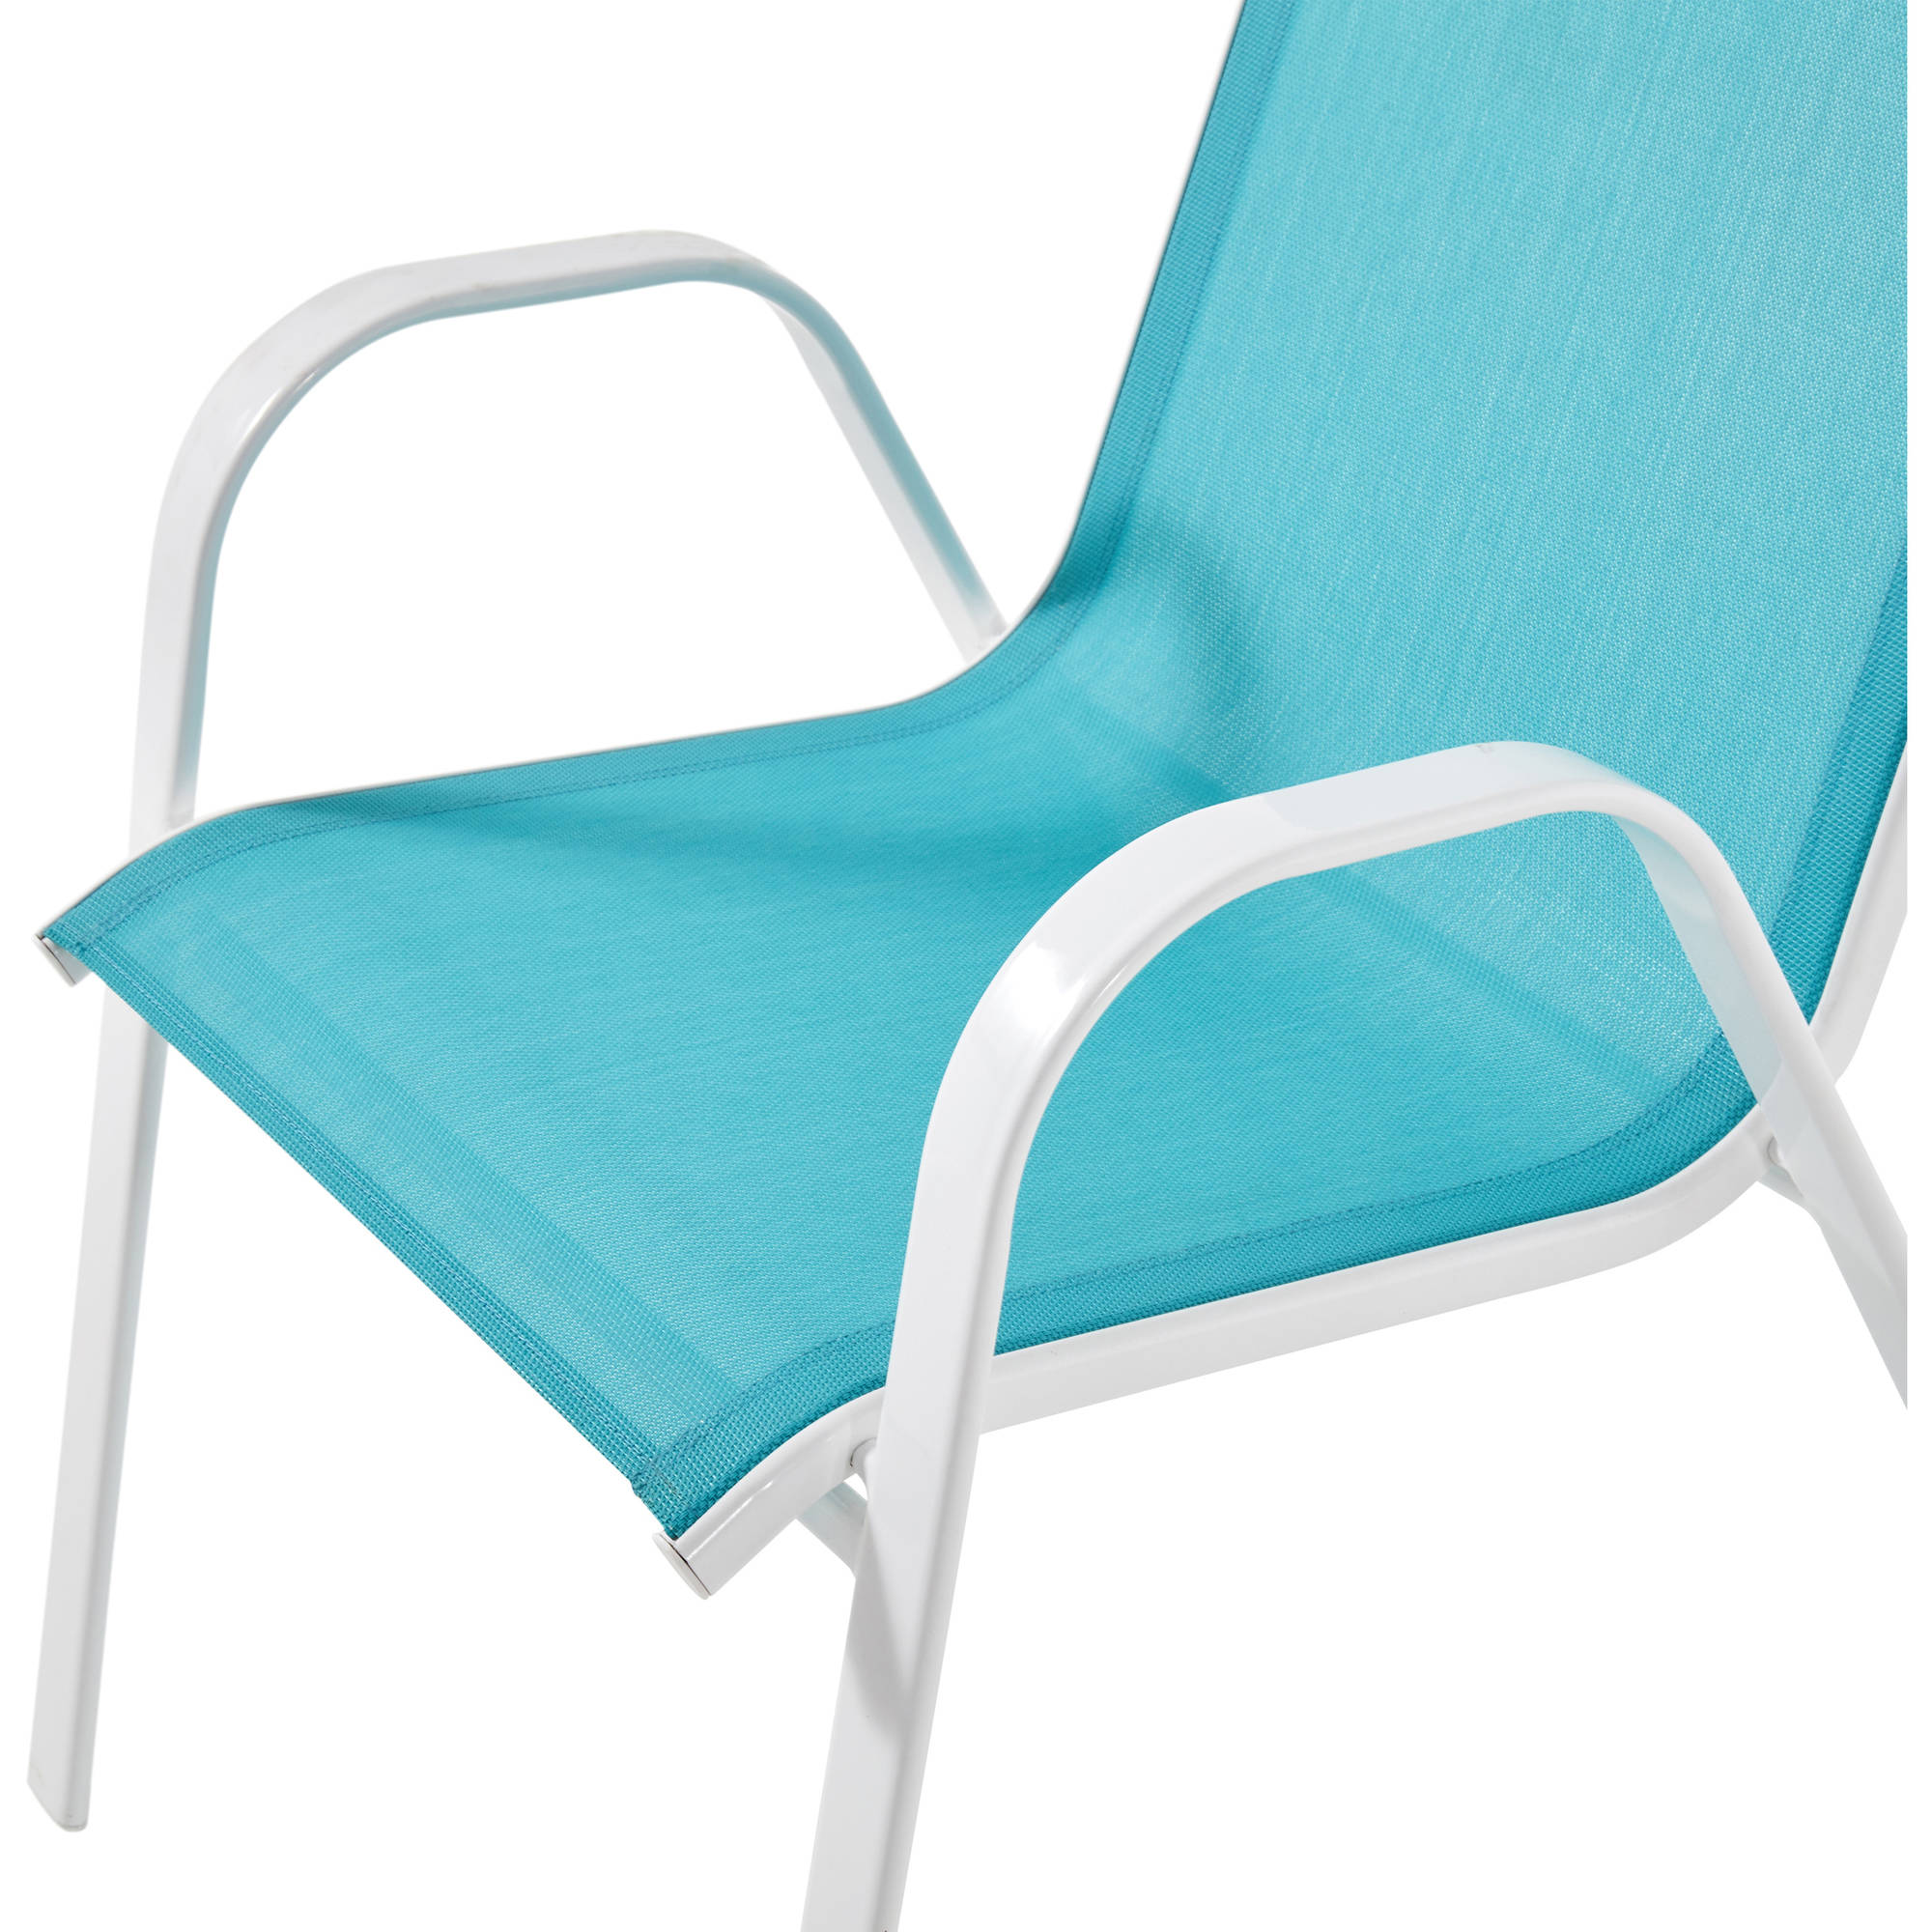 Mainstays Heritage Park Stacking Sling Chair, Turquoise   Walmart.com